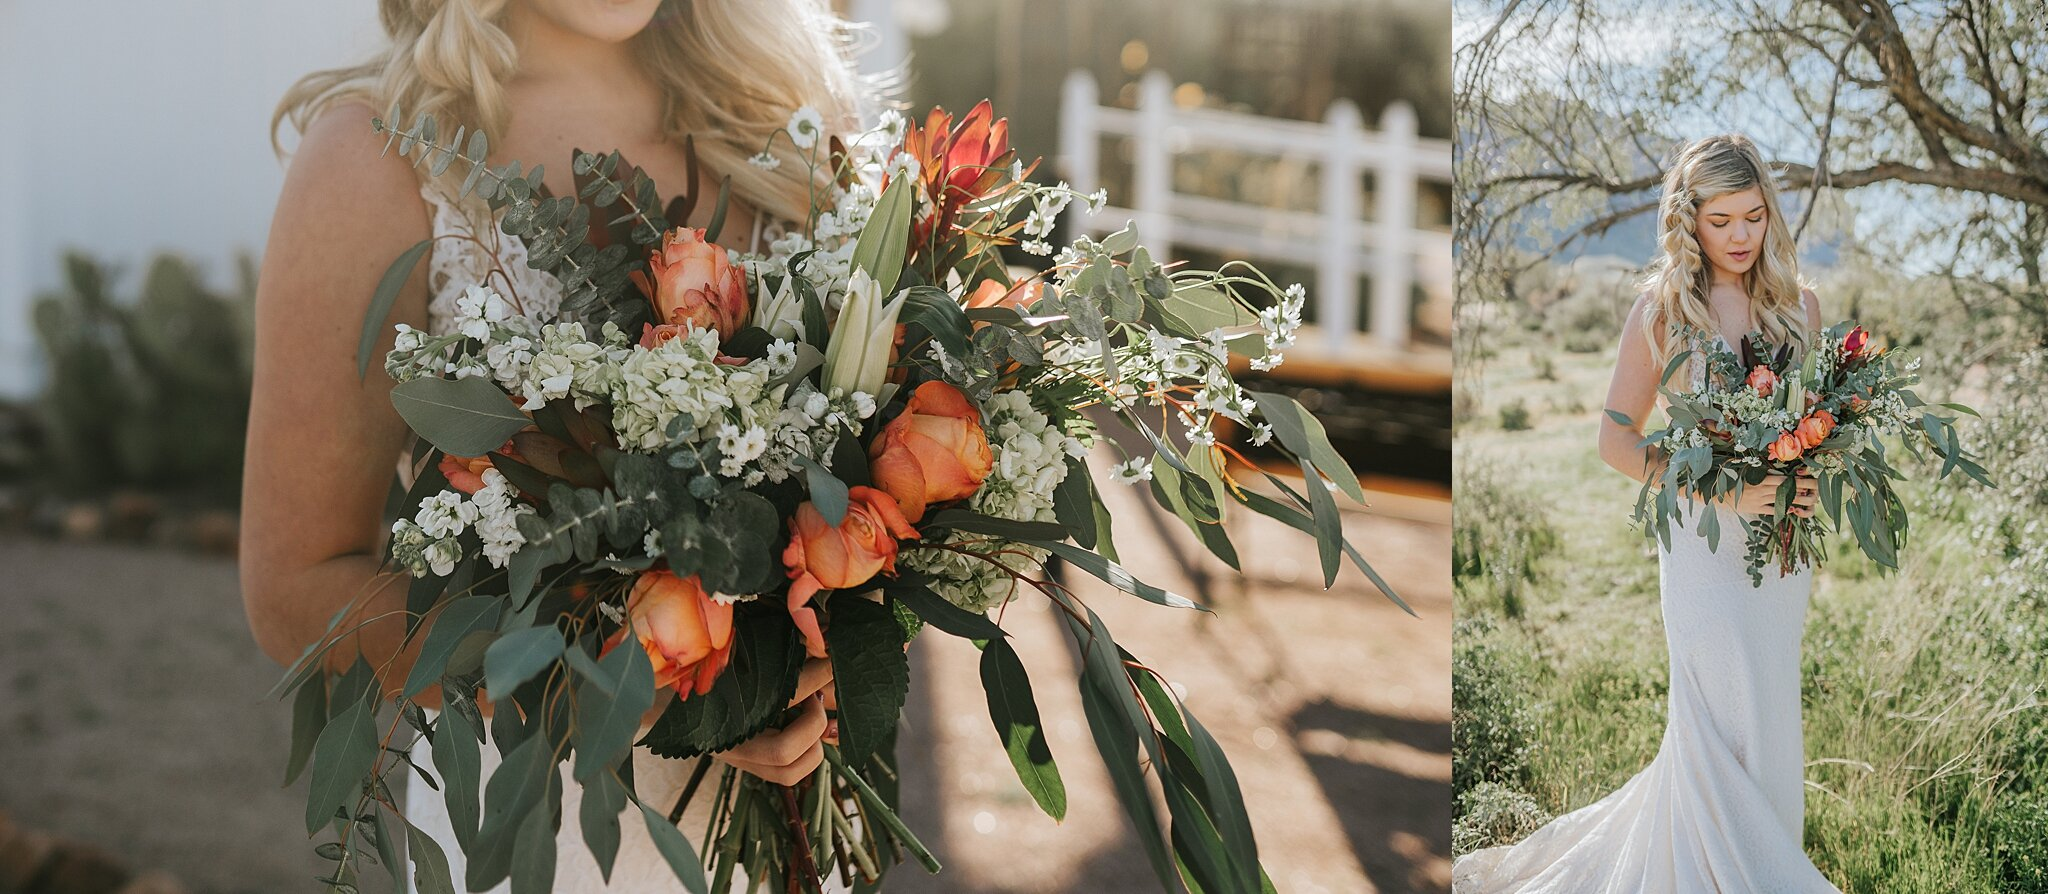 summer-boho-bridals-elopement-adventure-knoxville-carefree-wedding-look-for-the-light-photo-video